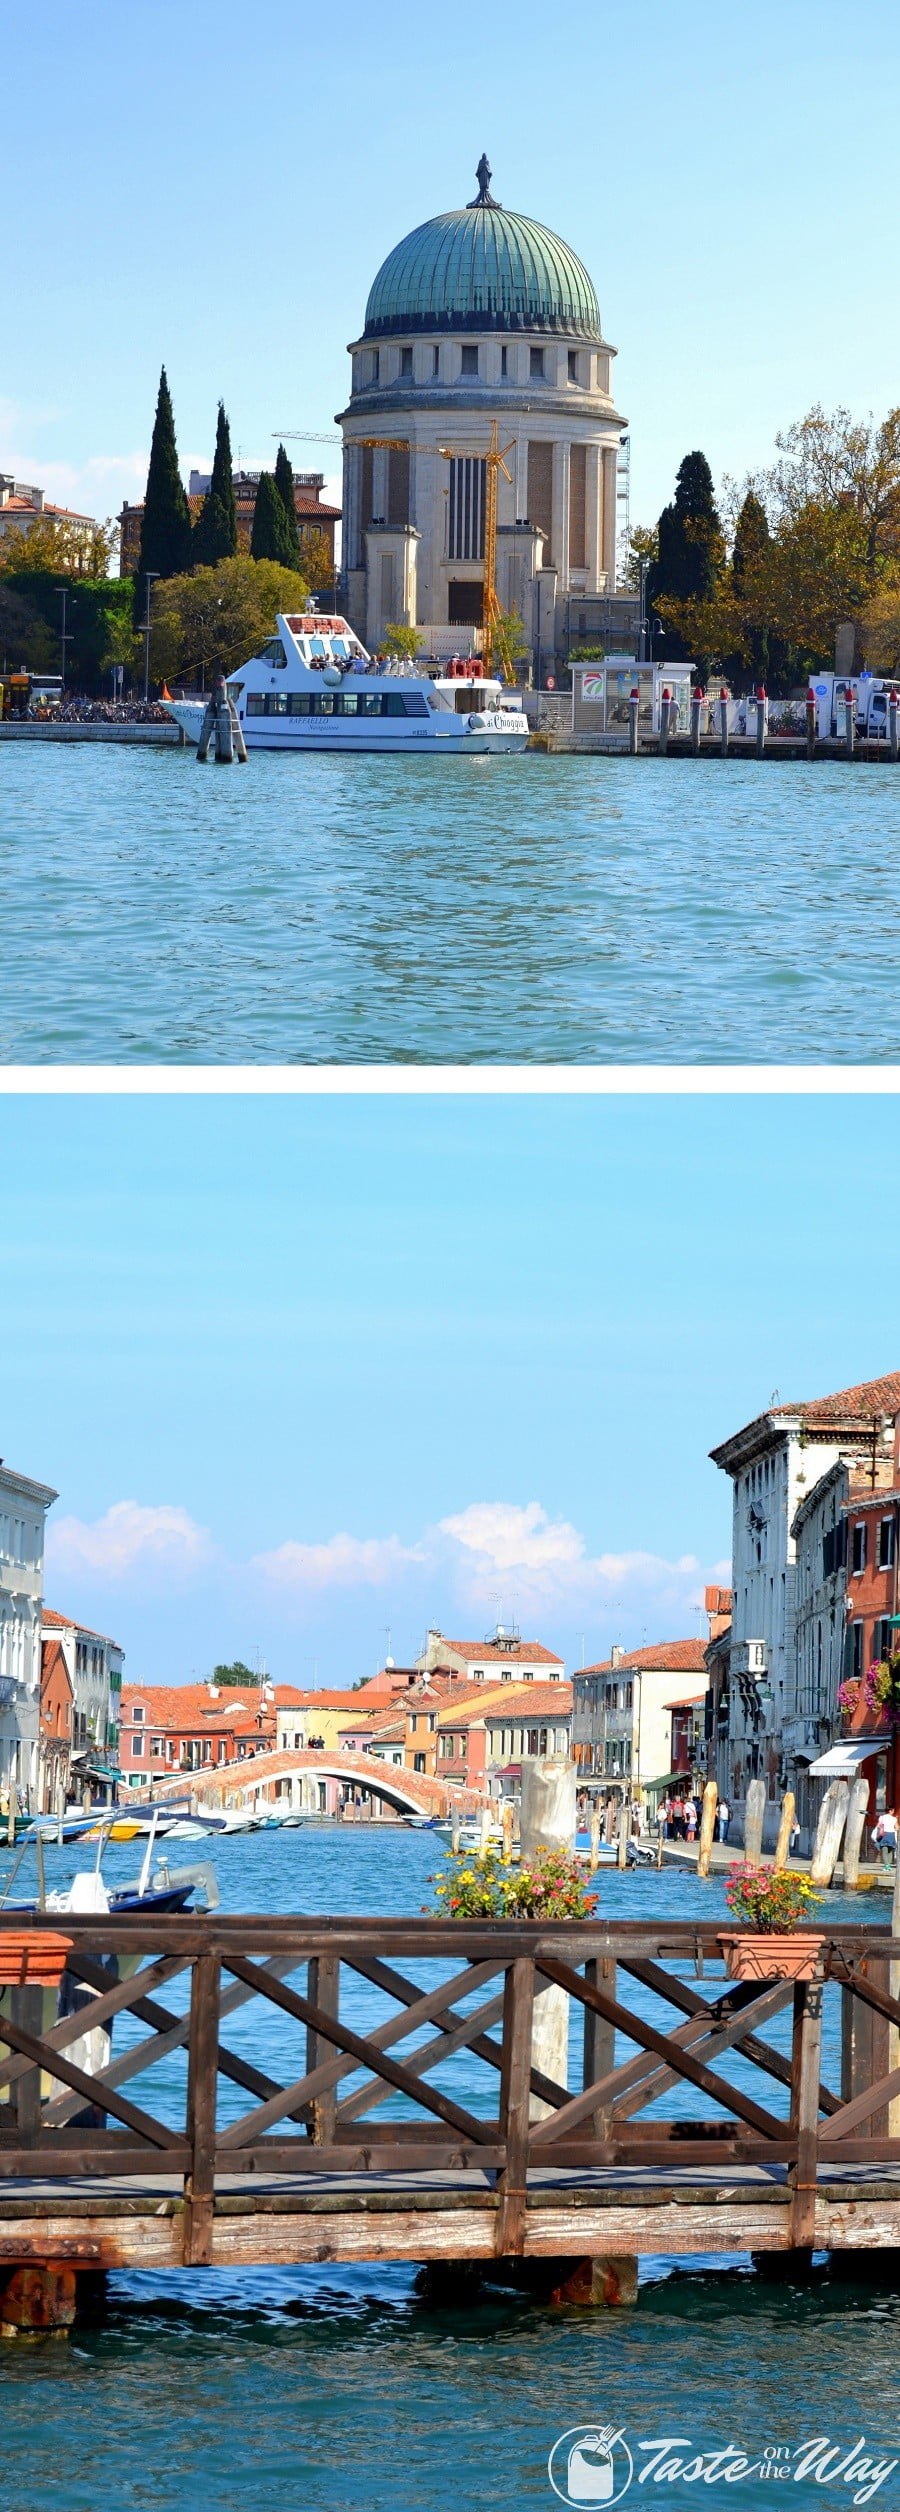 Check out these awesome pictures of Murano, #Venice #travel #photography @tasteontheway